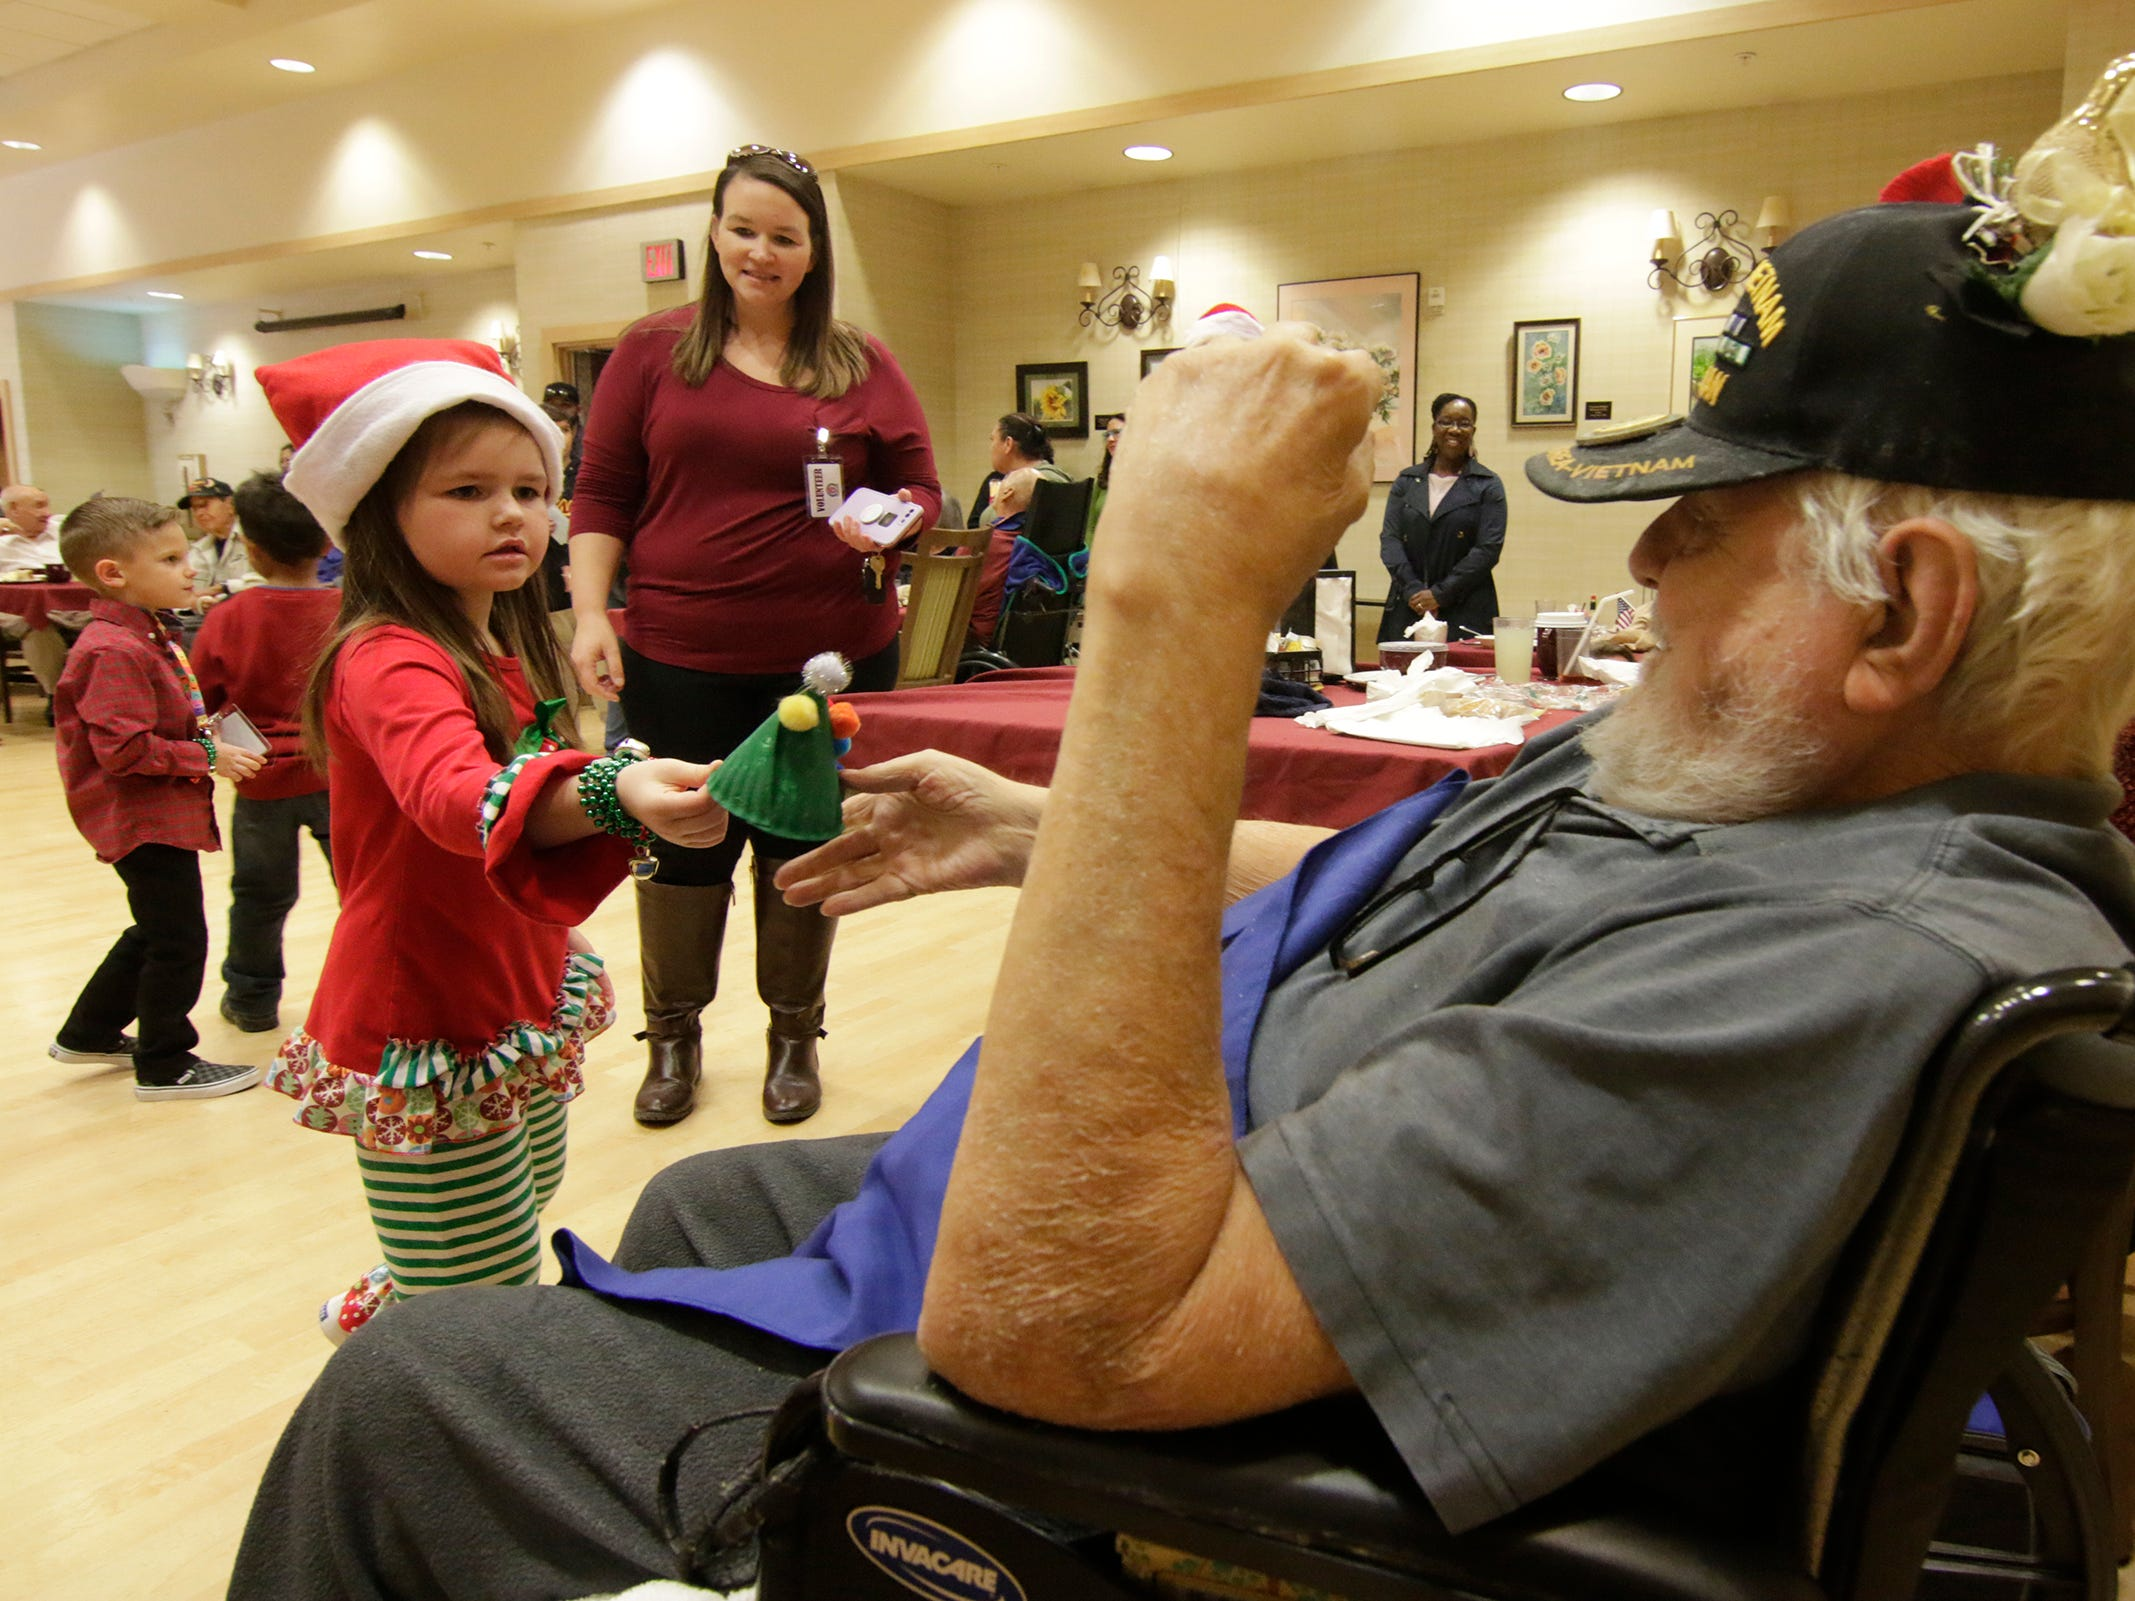 Students from Sgt. Jose F. Carrasco Elementary from SISD, spent their lunch time singing to seniors. The kindergarten students visited three separate dining areas at the Ambrosio Guillen Texas State Veterans Home in northeast El Paso. The students also presented the residents of the home handmade Christmas ornaments.